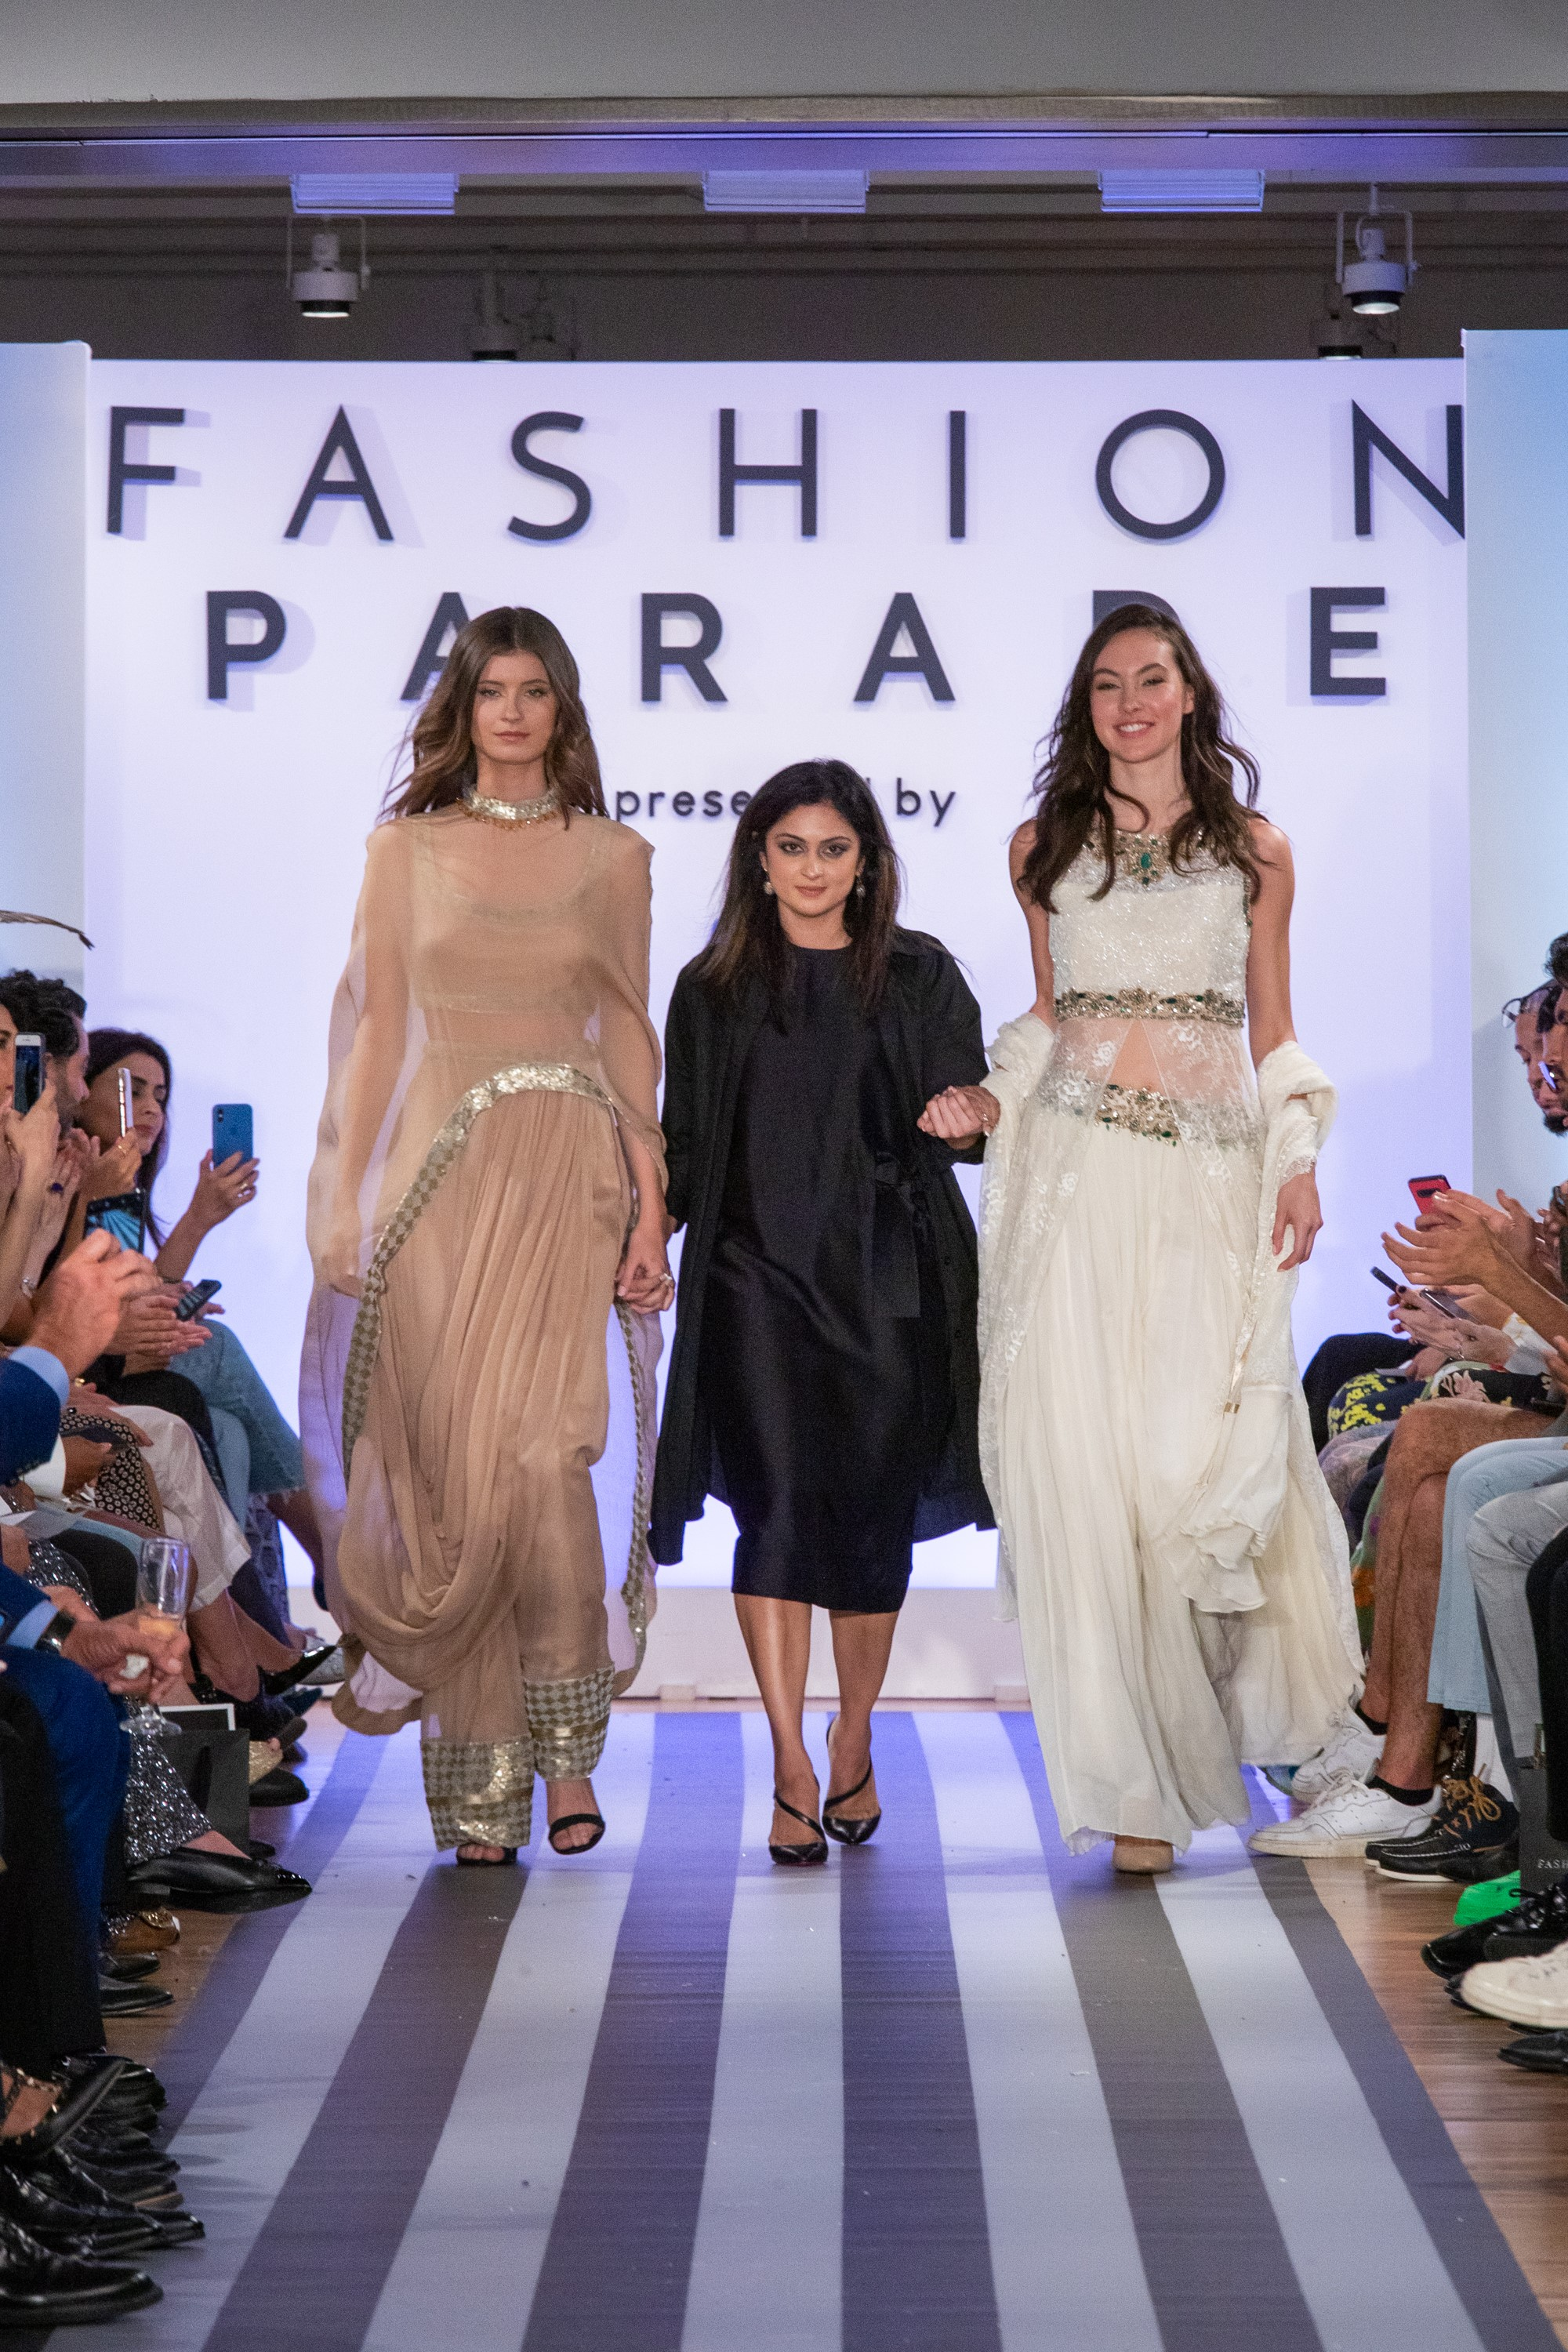 Designer Fazia Samee with models showing her collection.